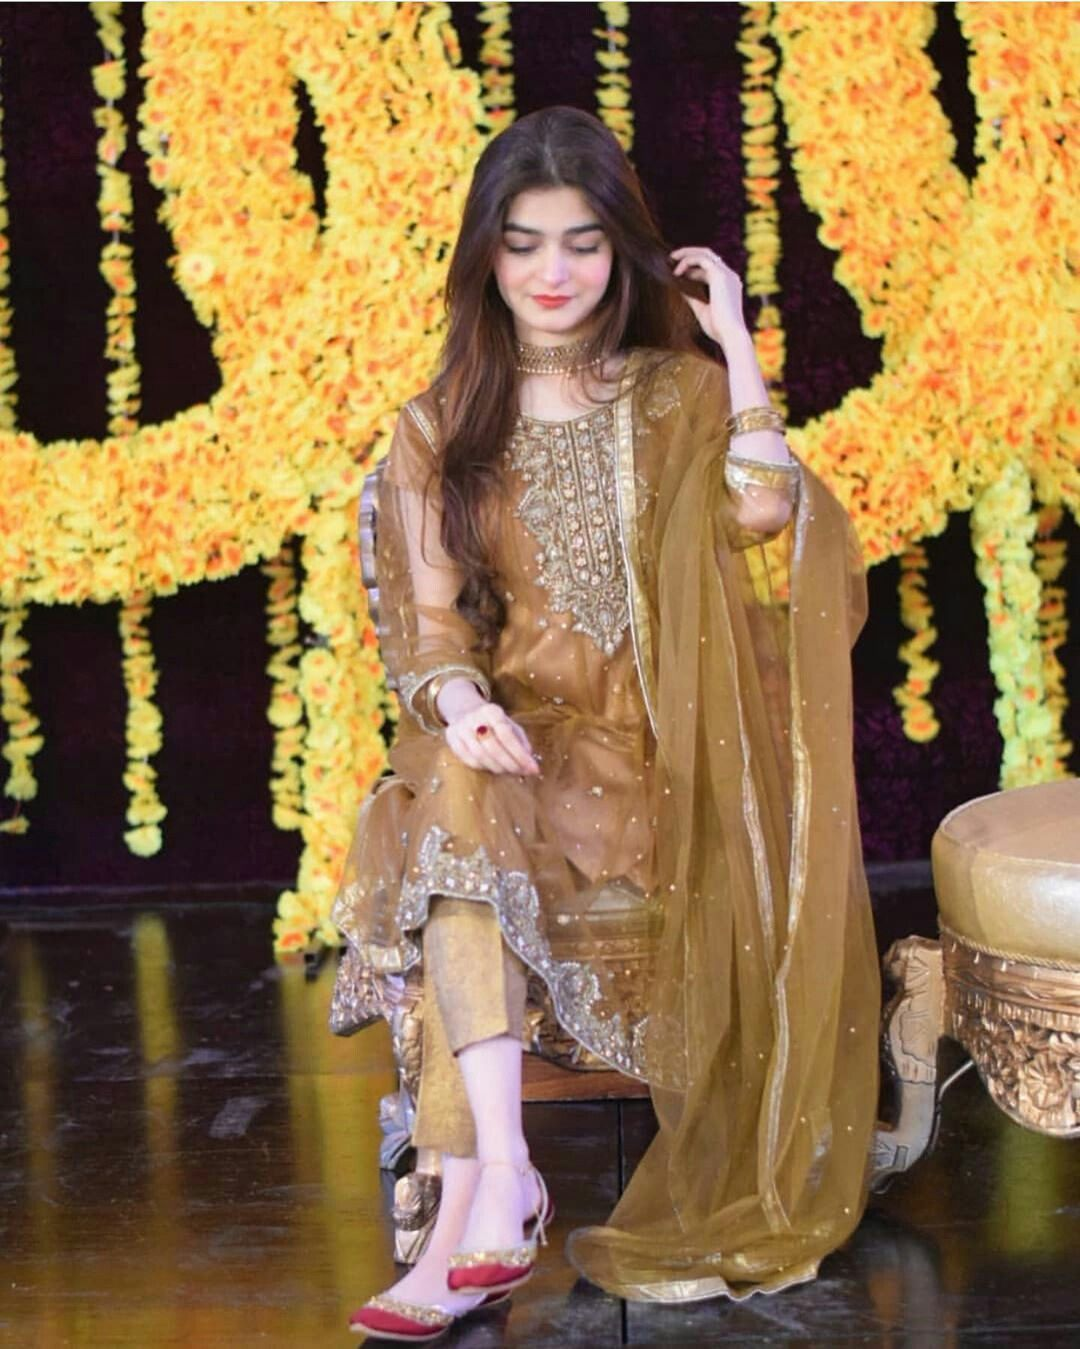 Latest 2020 Girls Wedding Dress Collocation Most Fancy And Stylish Wedding Dress Sisters In 2020 Wedding Dresses For Girls Bridal Outfits Beautiful Pakistani Dresses